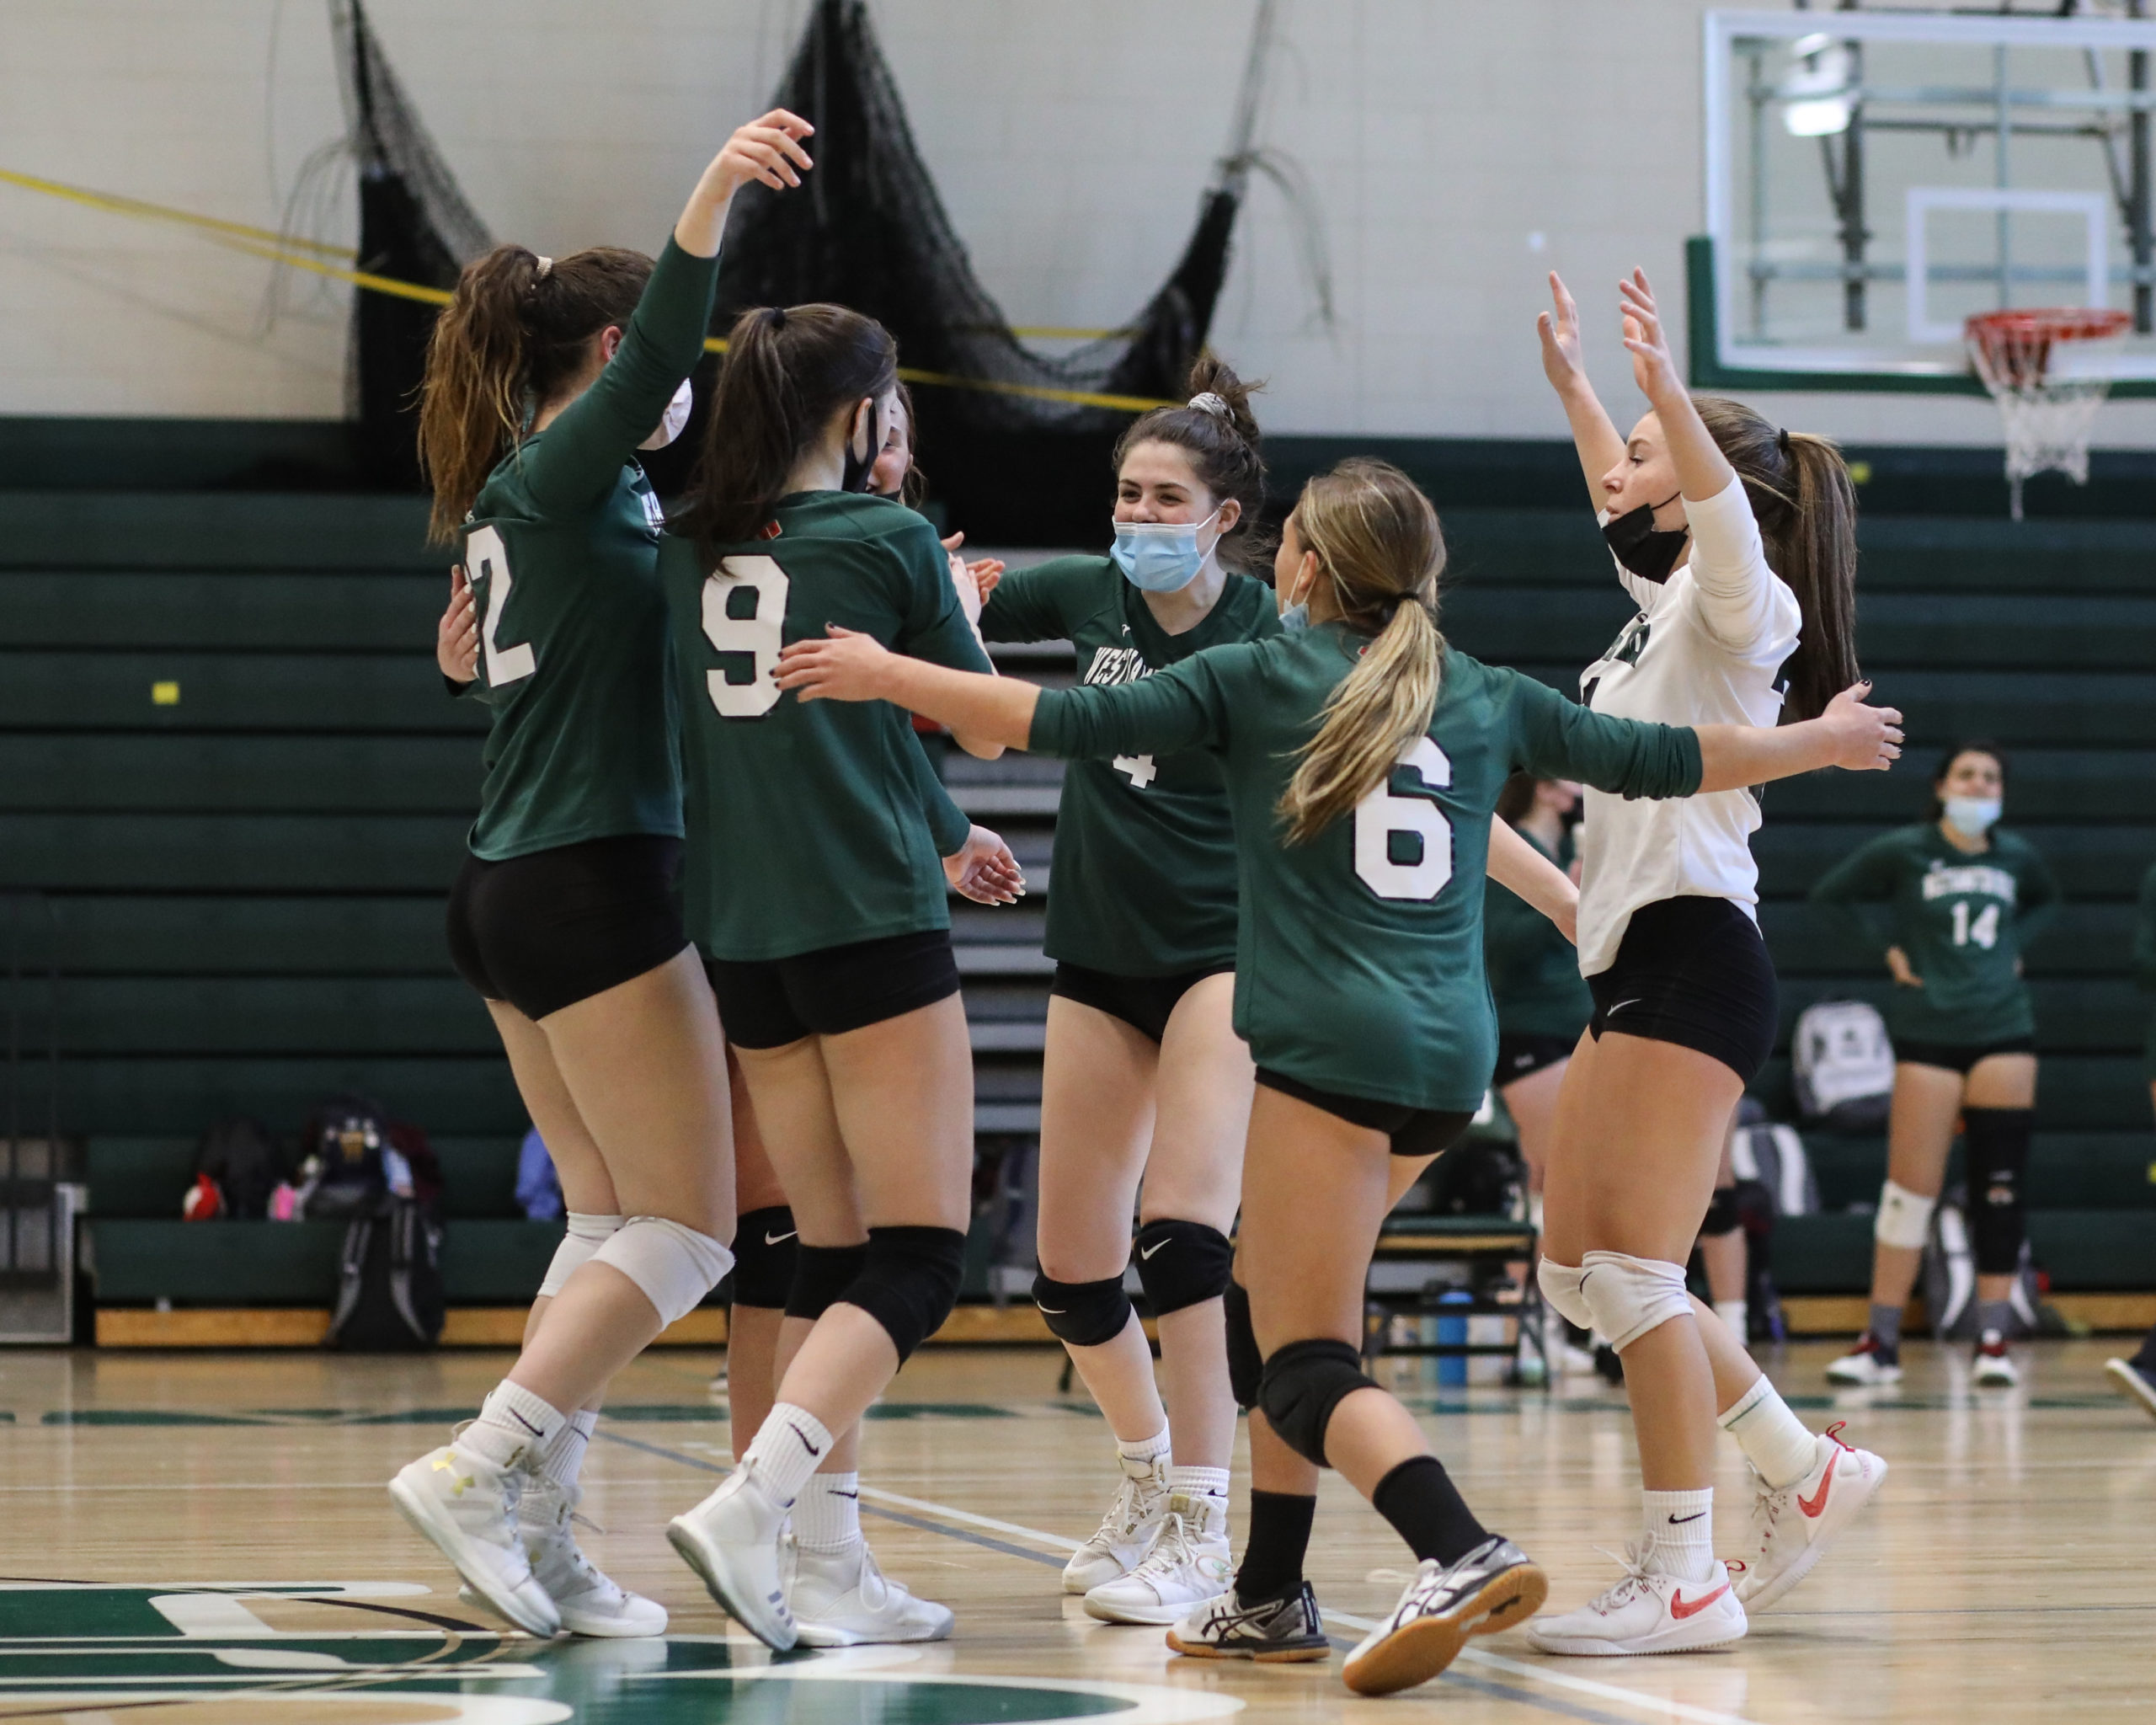 Westhampton Beach's girls volleyball team celebrates its first-set win over Kings Park.